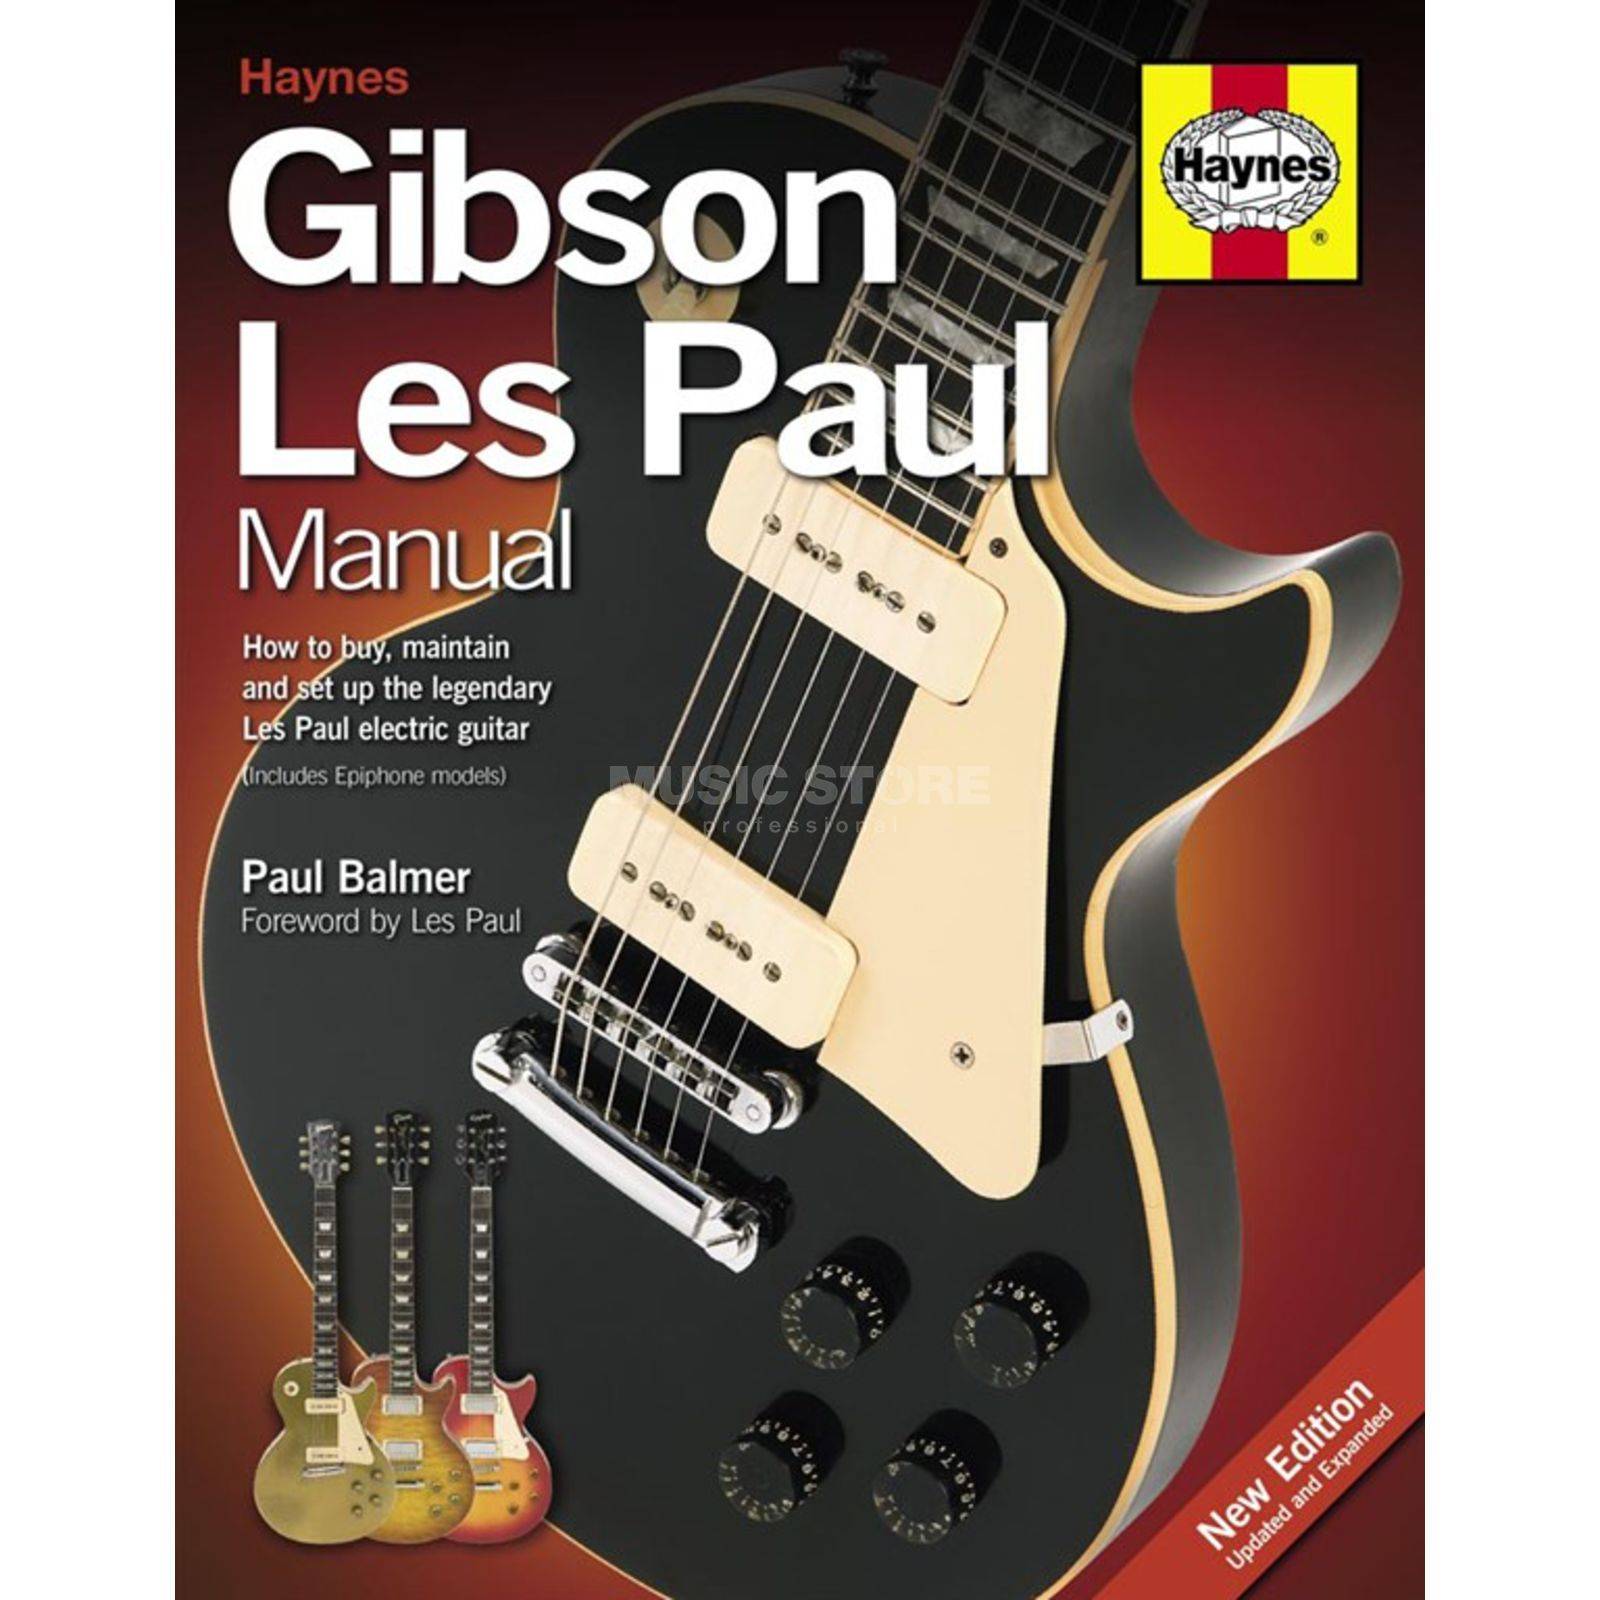 Haynes Publishing Gibson Les Paul Manual Paul Balmer, 2nd Edition Produktbild